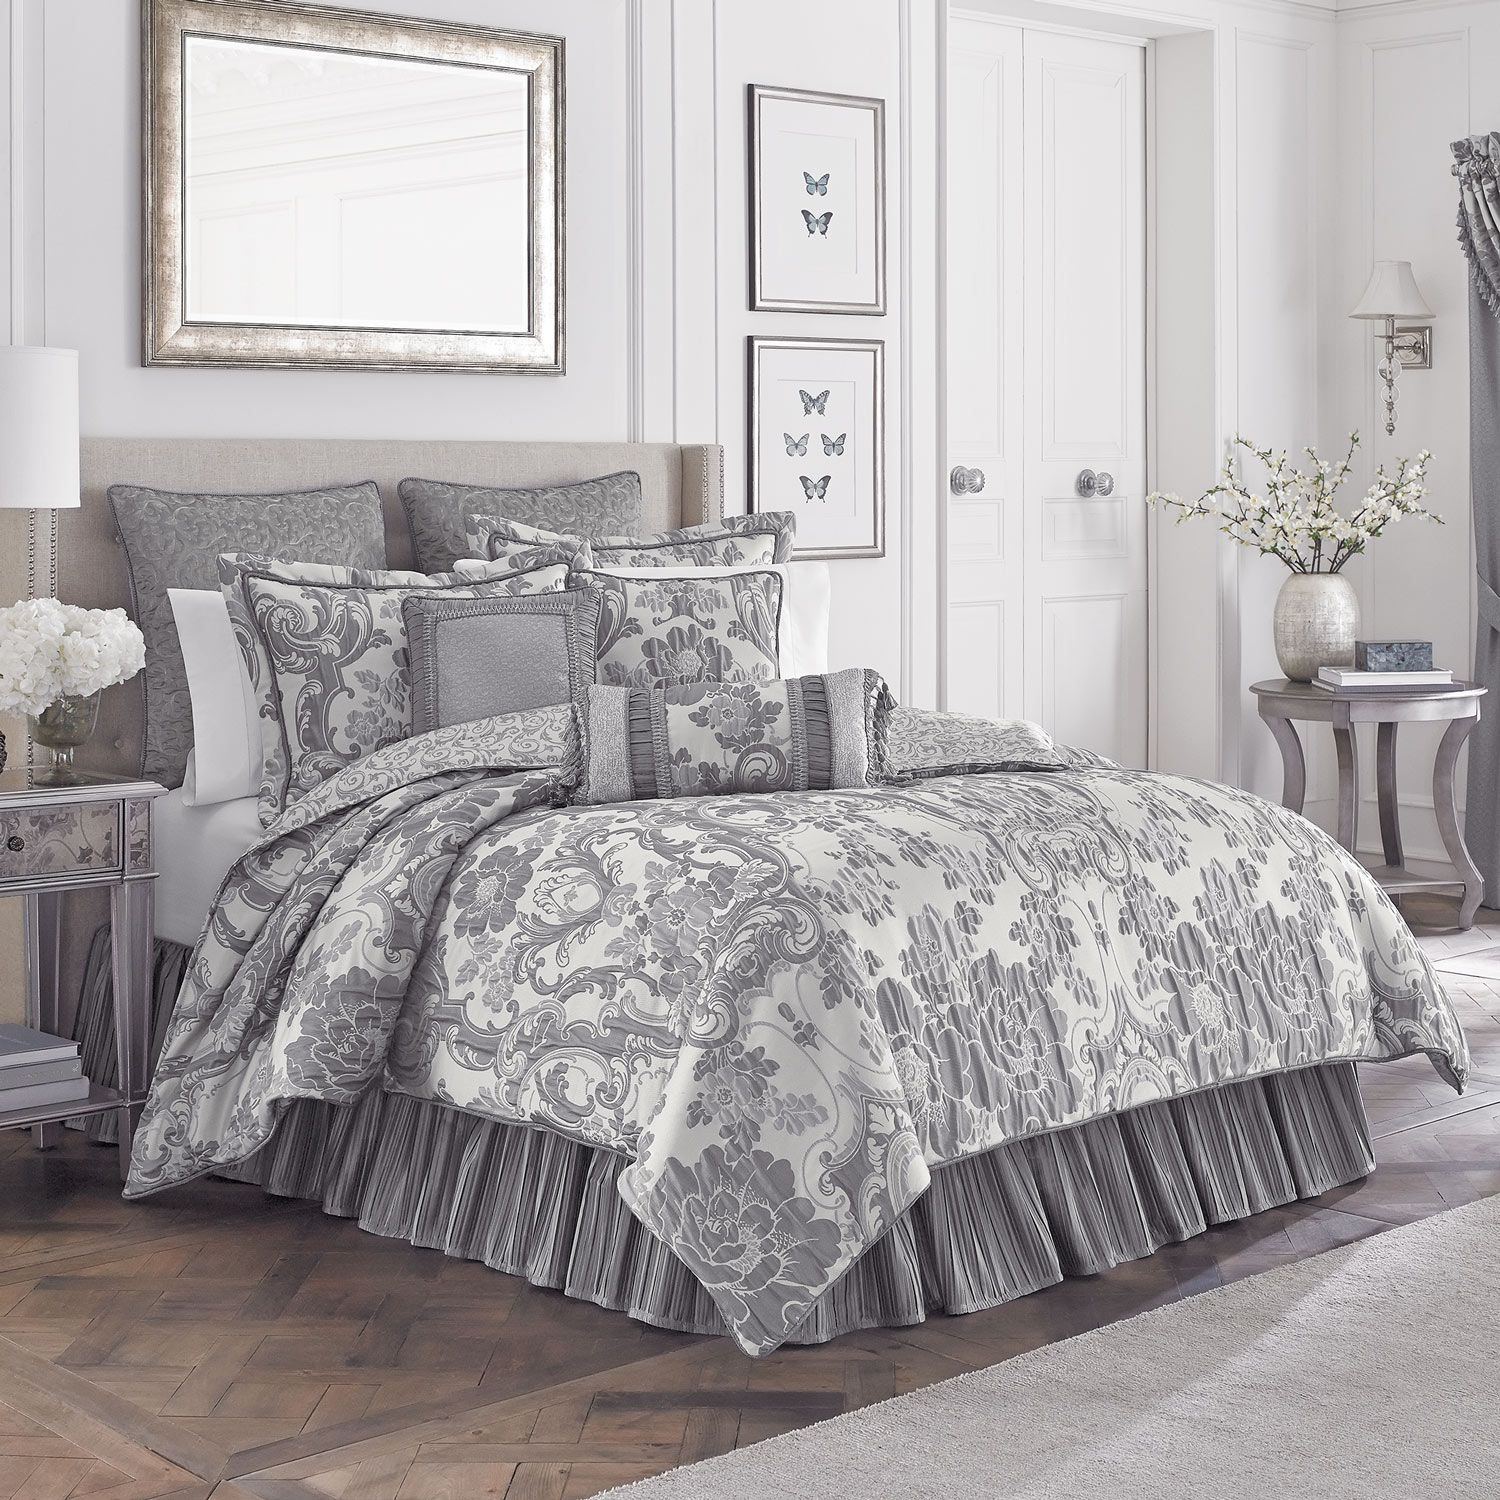 Interesting california king bedding for bedroom design with california king bed frame